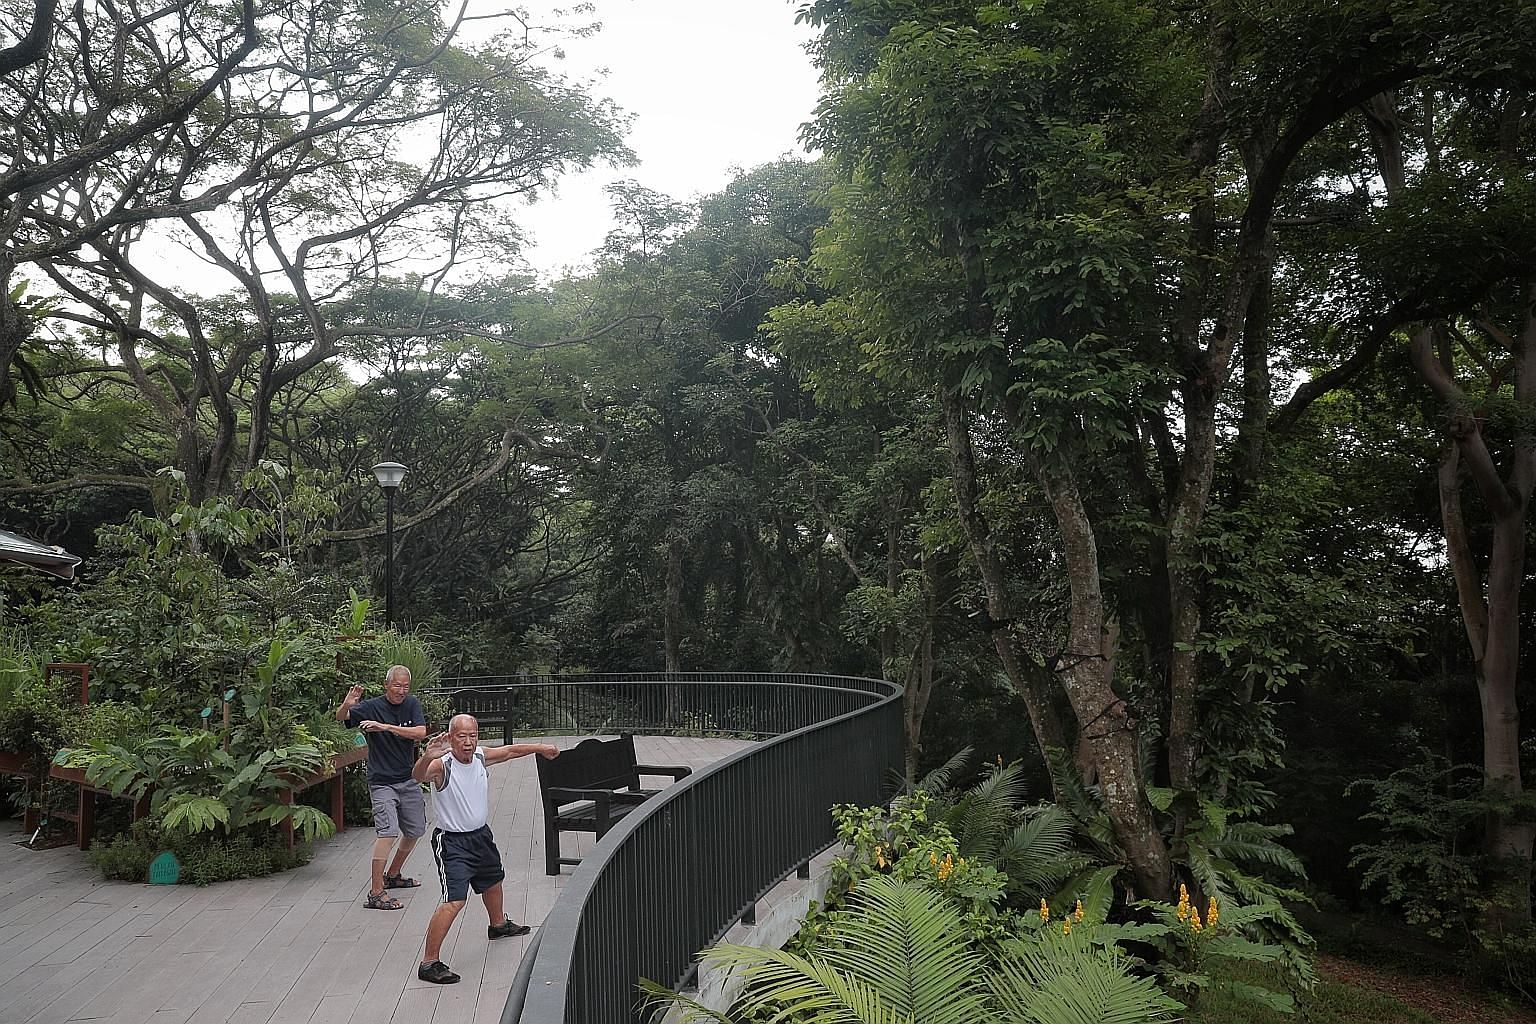 Park users practising taiji at the new therapeutic garden in Telok Blangah Hill Park yesterday. Nestled in the park's natural forest setting, the garden features mature trees and lesser-known forest species with therapeutic effects, such as the Singa